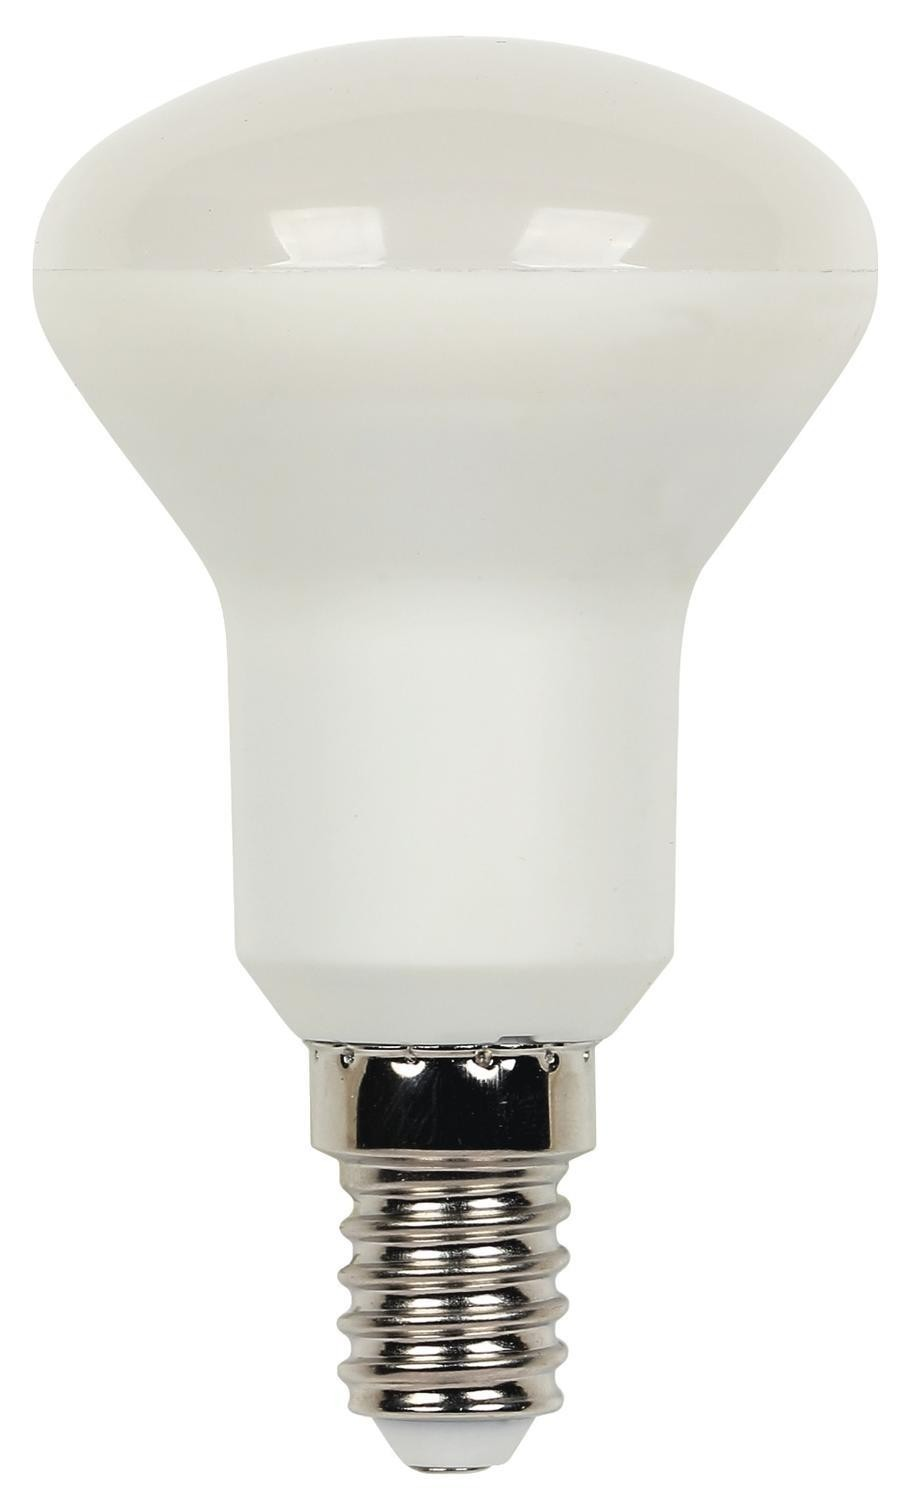 Lampe Led Dimmbar Led Lamp 5 Watt E14 R50 Dimmable Warm White Lamps Of All